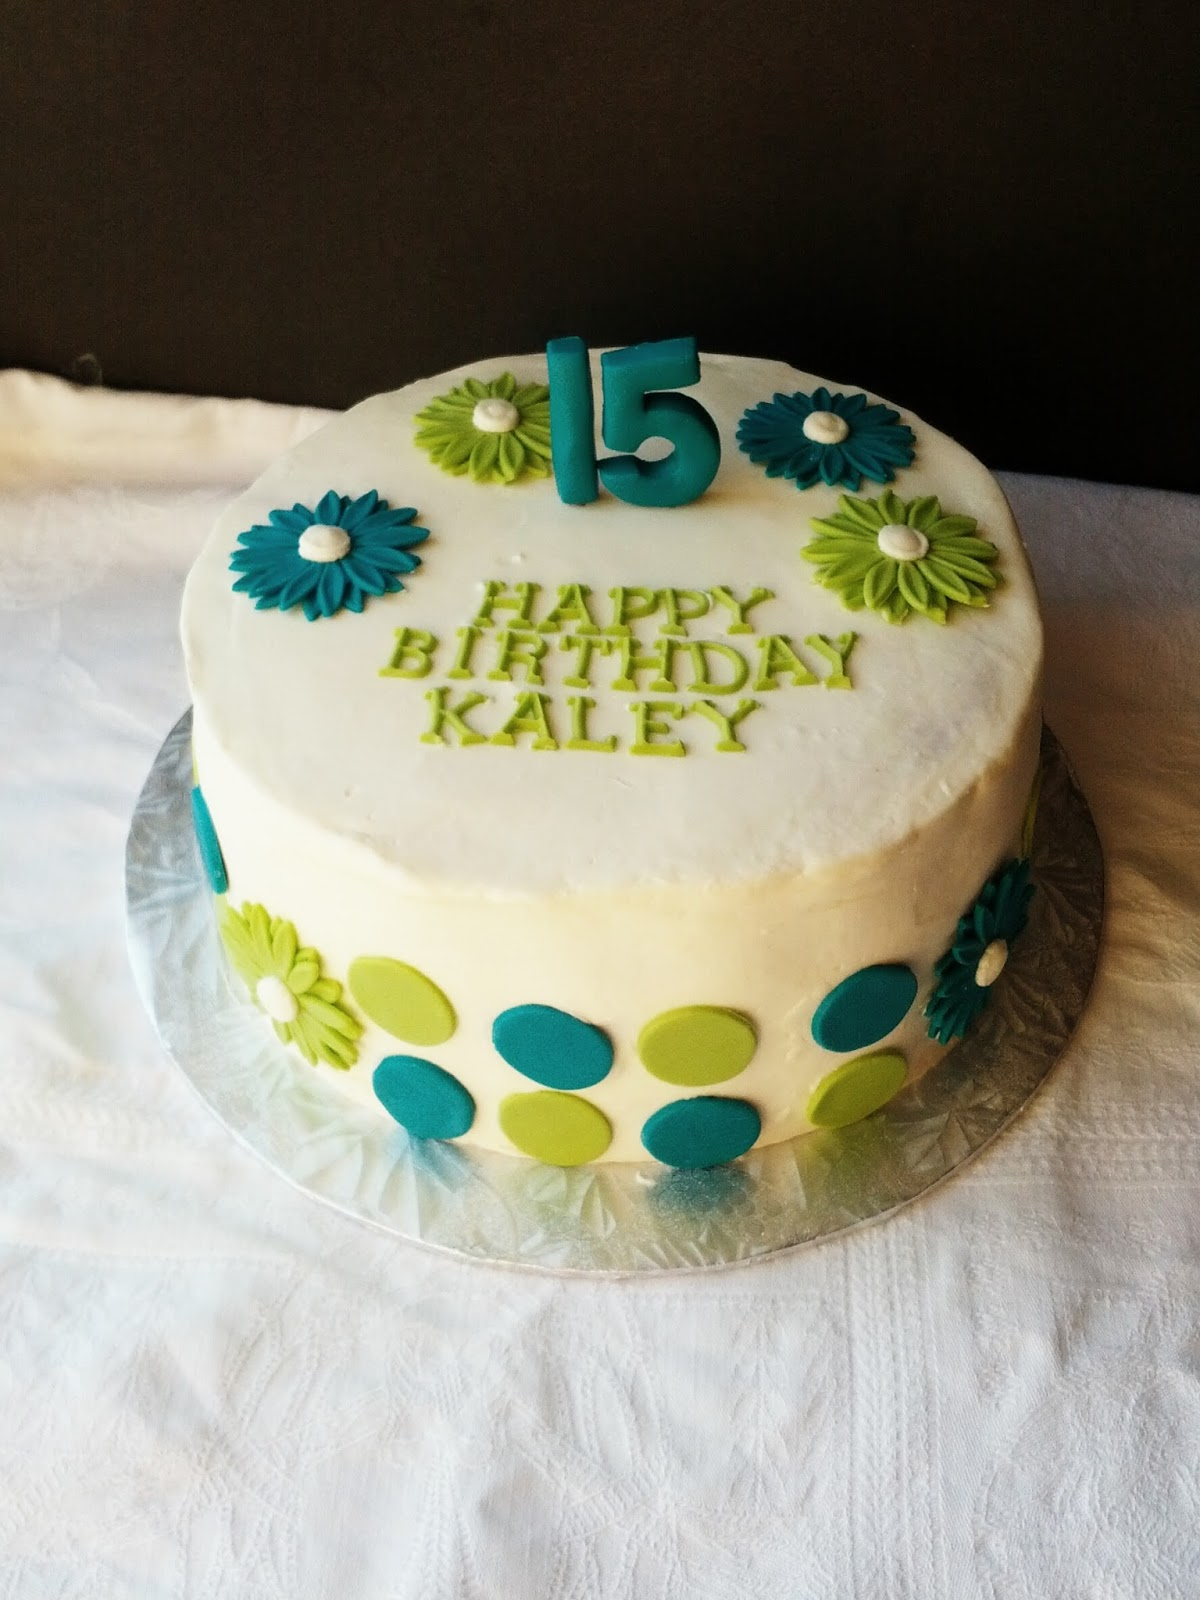 Second Generation Cake Design Turquoise and Green 15th Birthday Cake